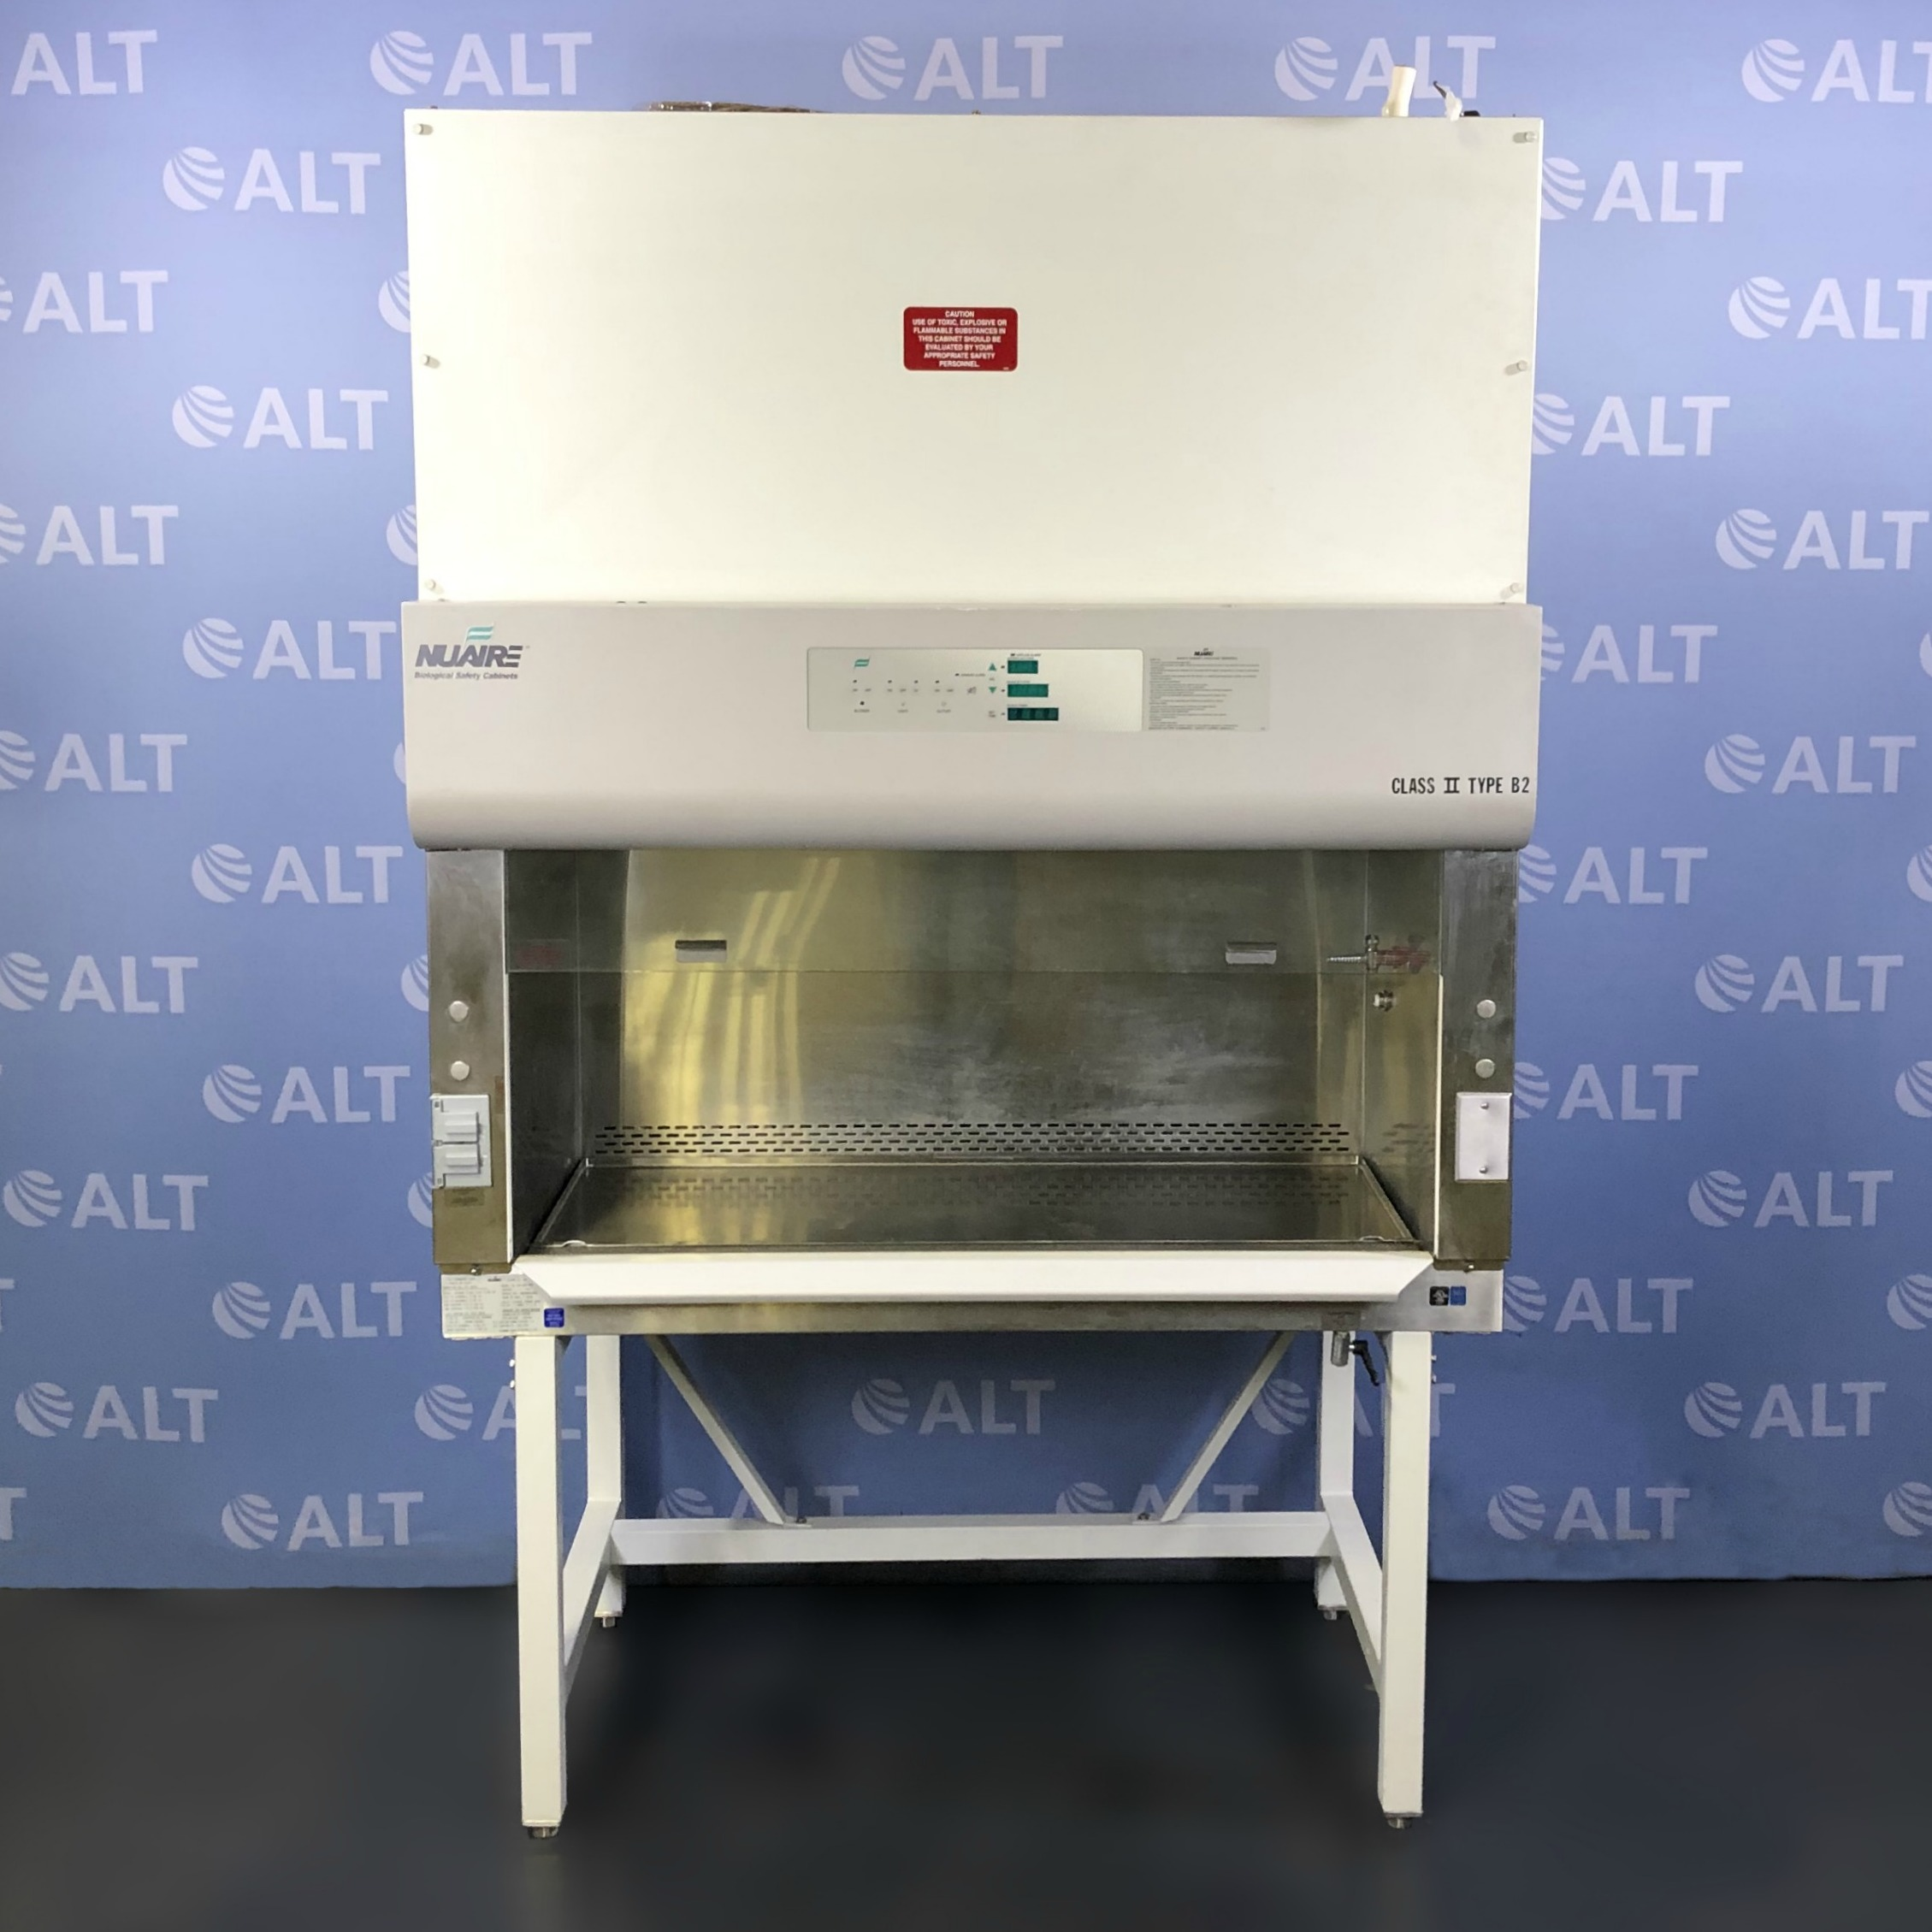 LabGard NU-430-400 Biological Safety Cabinet Class II Type B2 Name